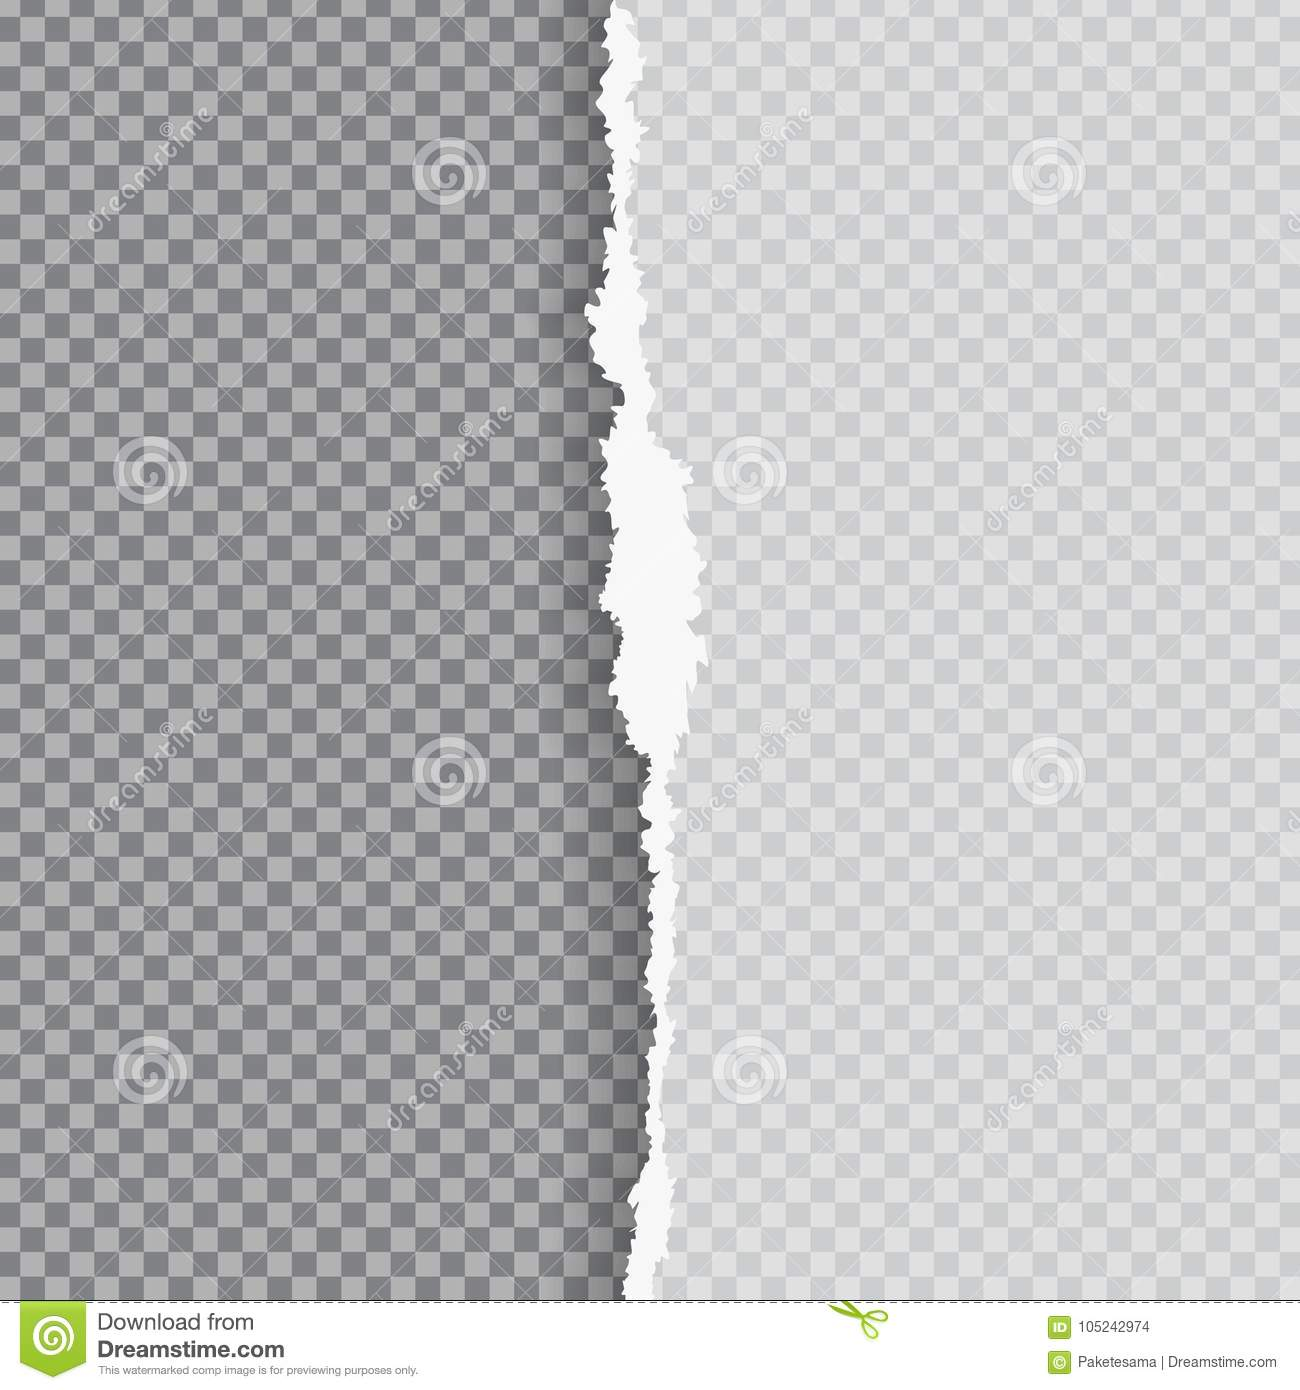 Torn Paper With Ripped Edge Stock Vector - Illustration of blank ...